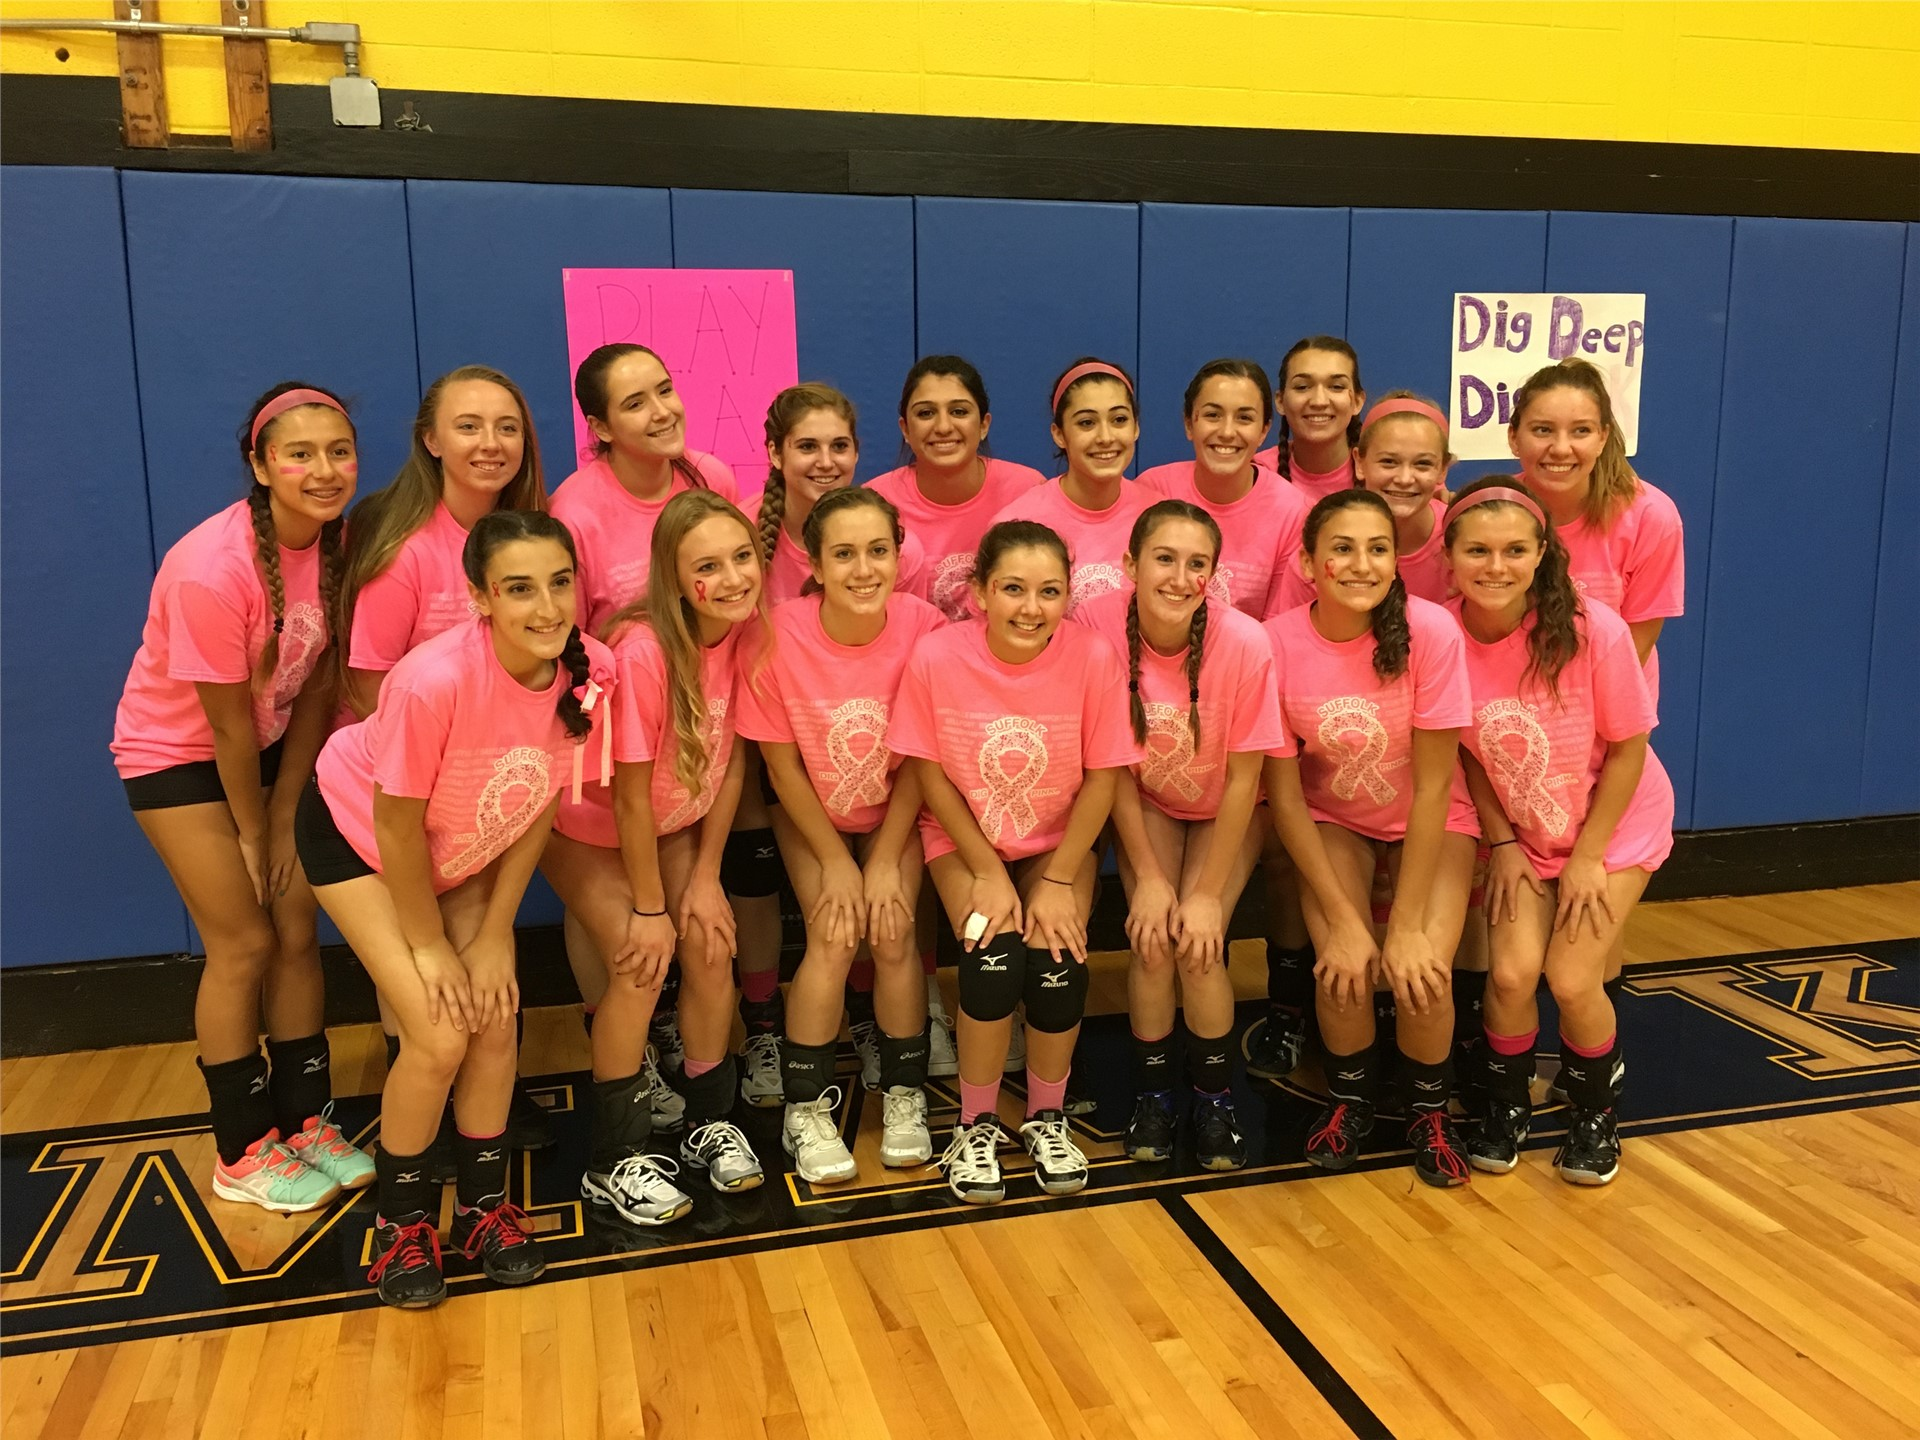 Girls Volleyball Teams